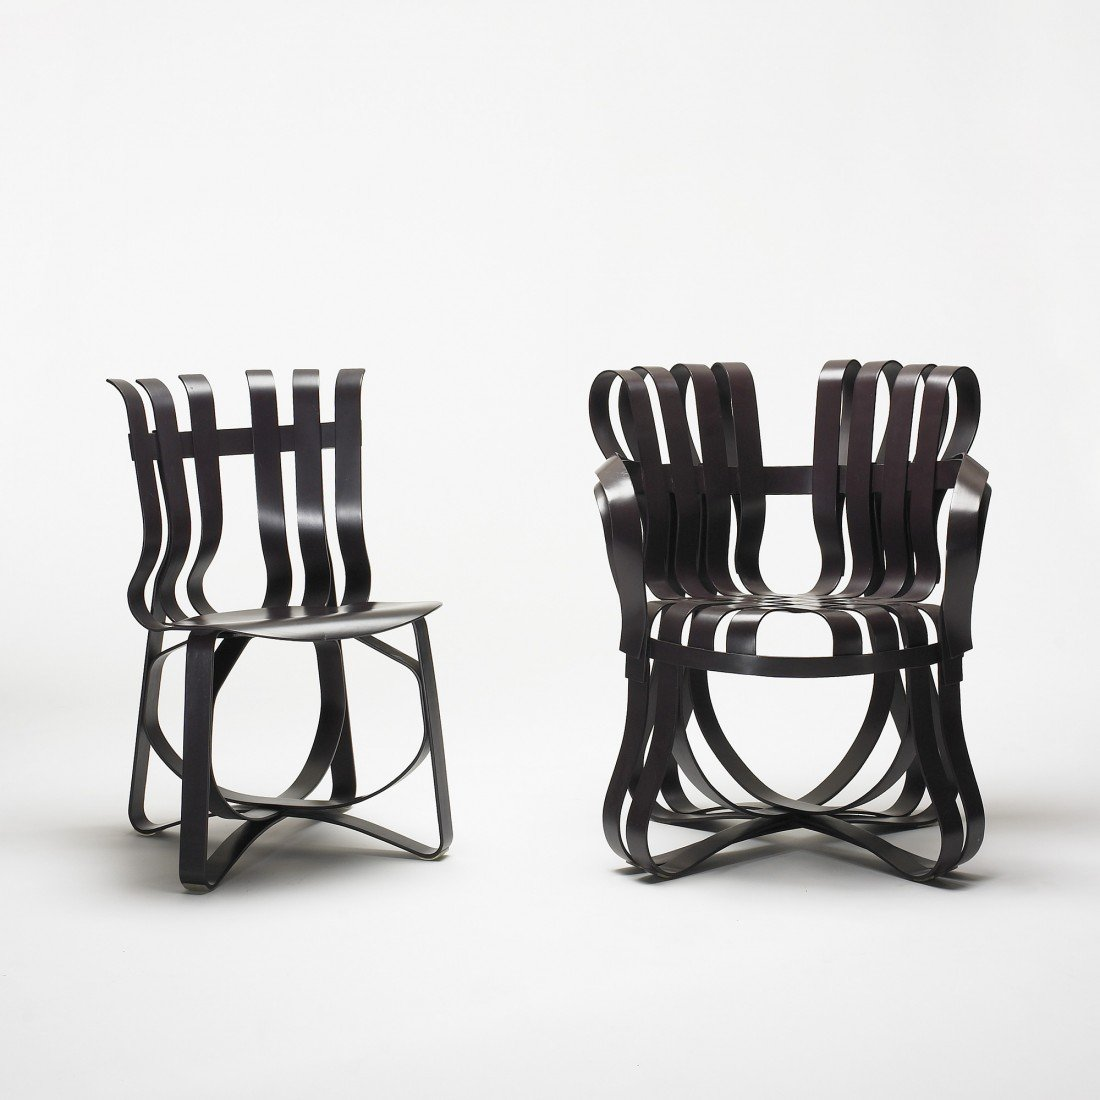 231: Frank Gehry Hat Trick chair and Cross Check chair